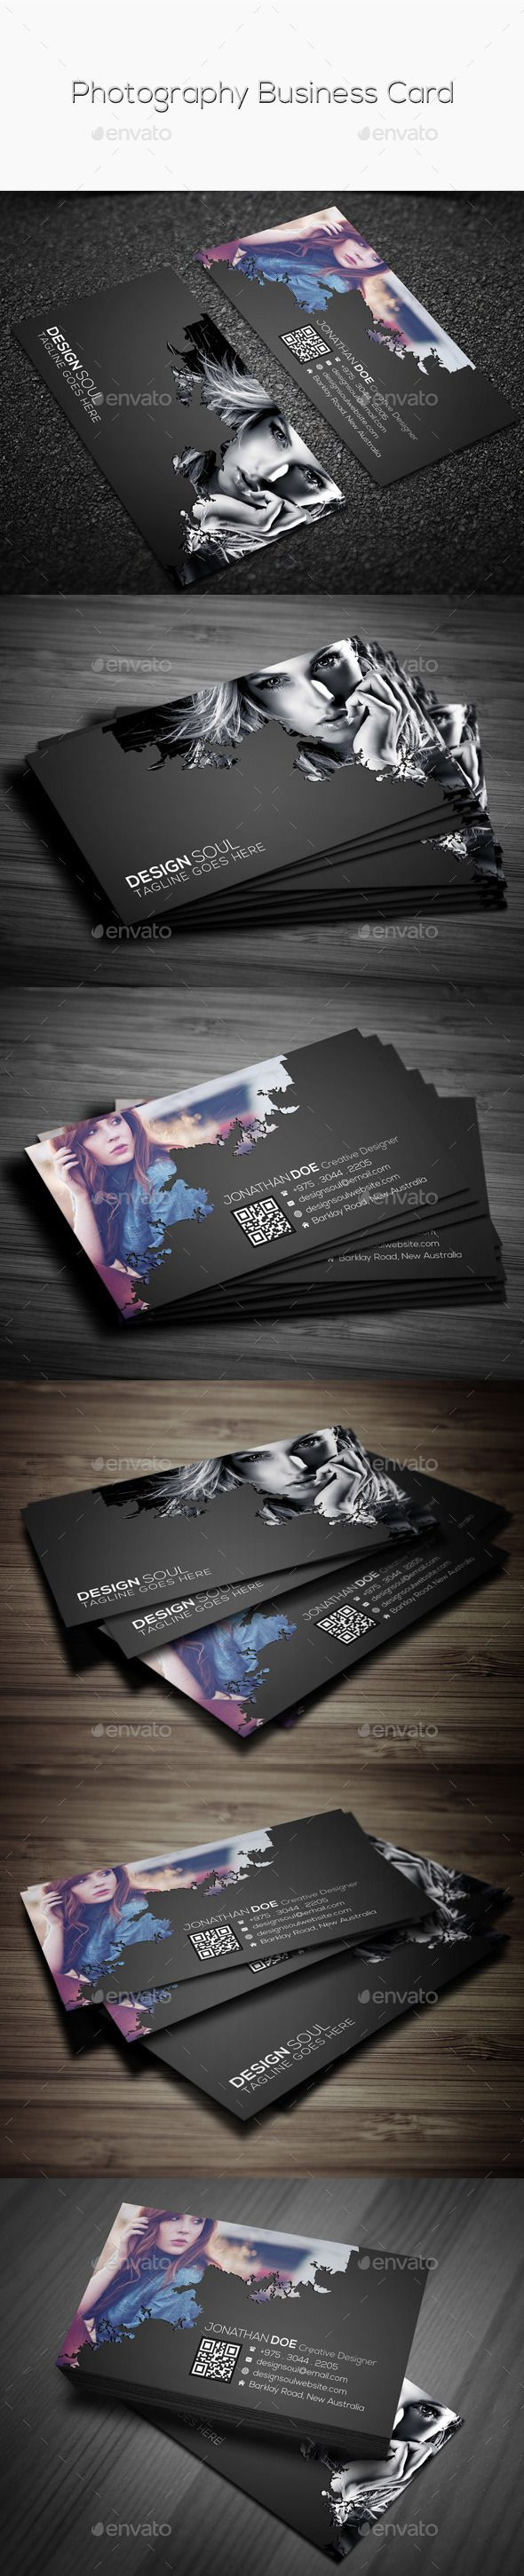 Photography business card photography business cards photography photography business card template design download httpgraphicriver reheart Gallery